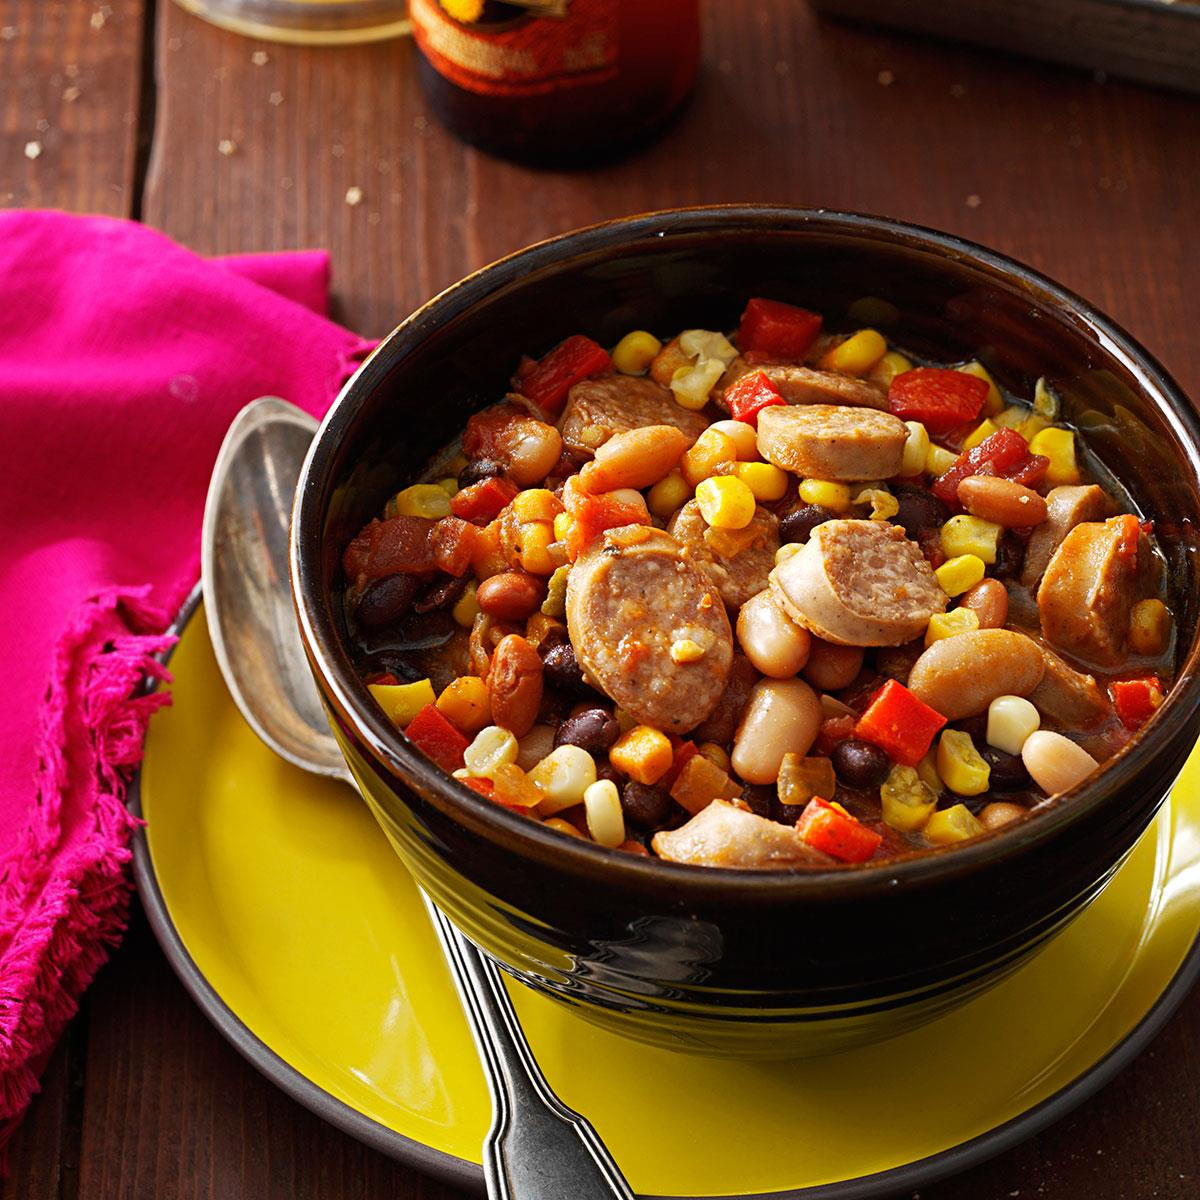 Beer Brat Chili Recipe How To Make It Taste Of Home